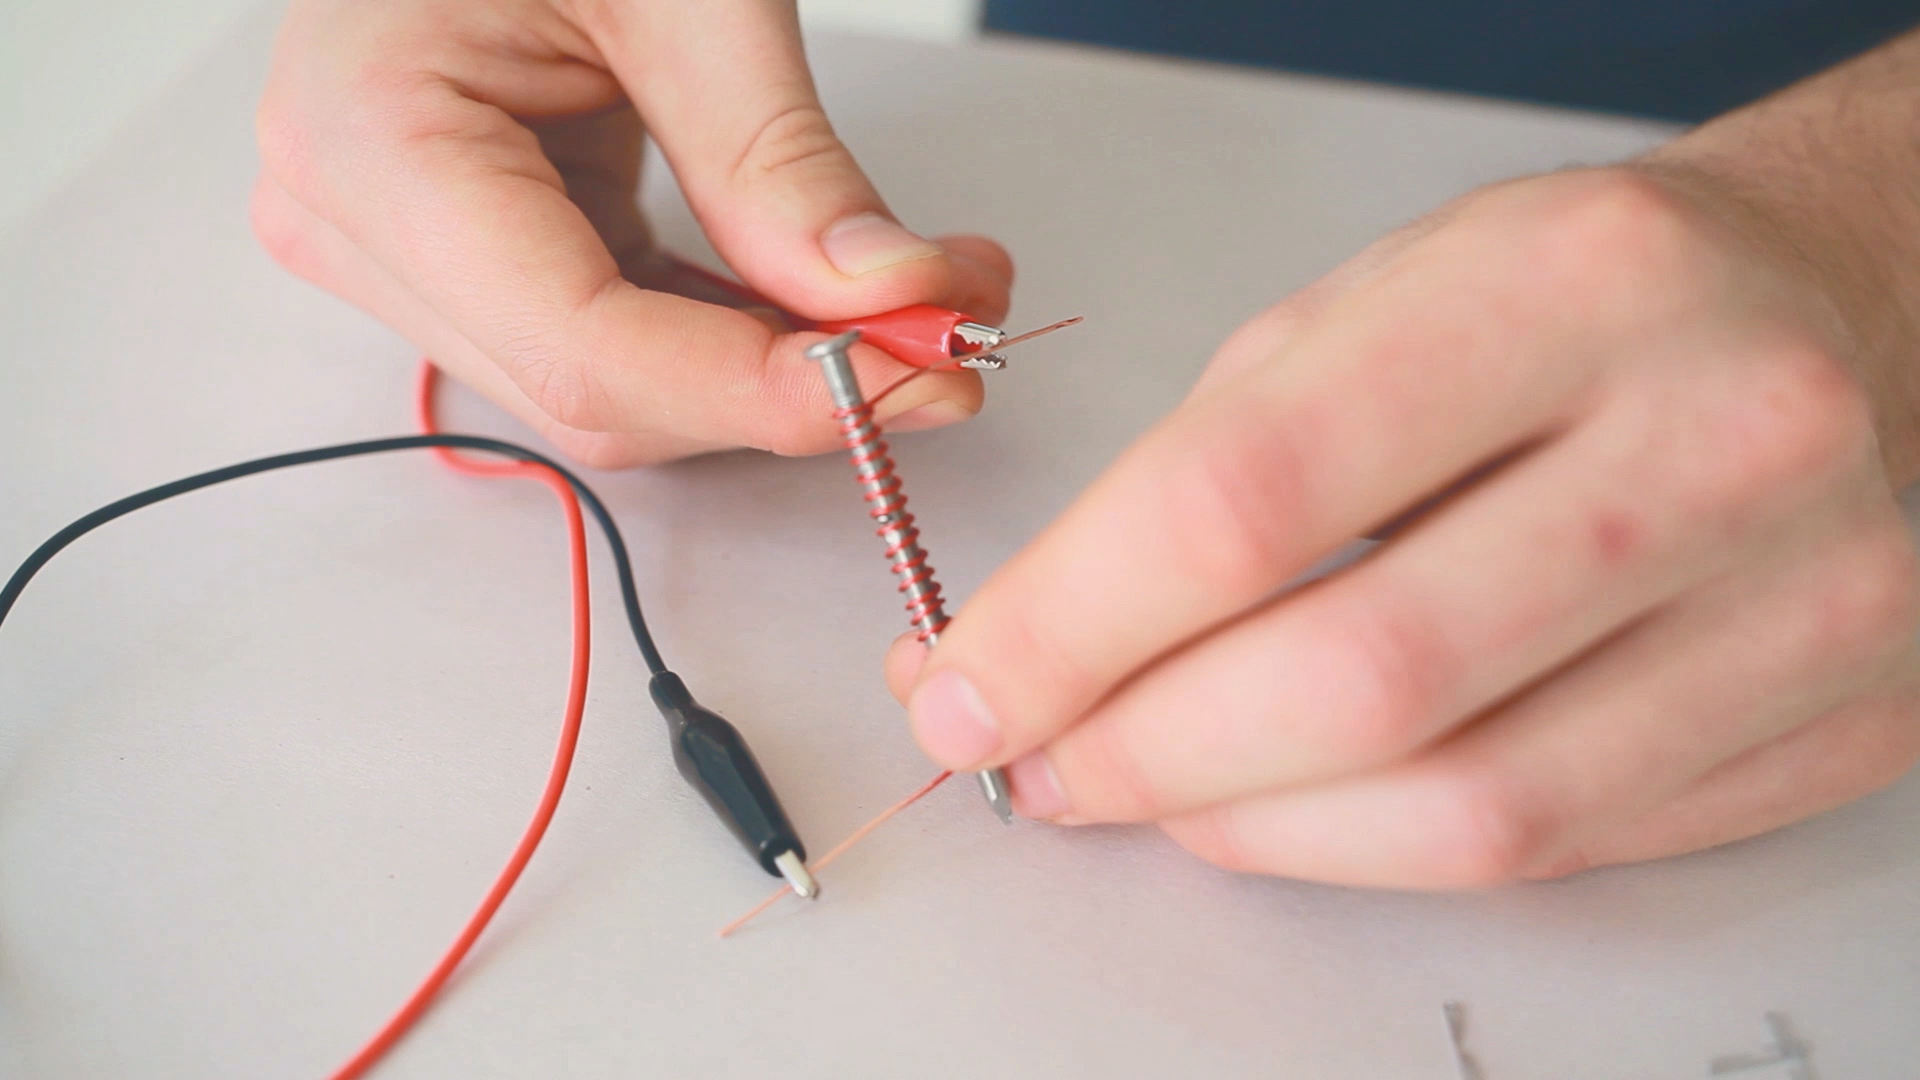 Electromagnet Home Wiring Materials List